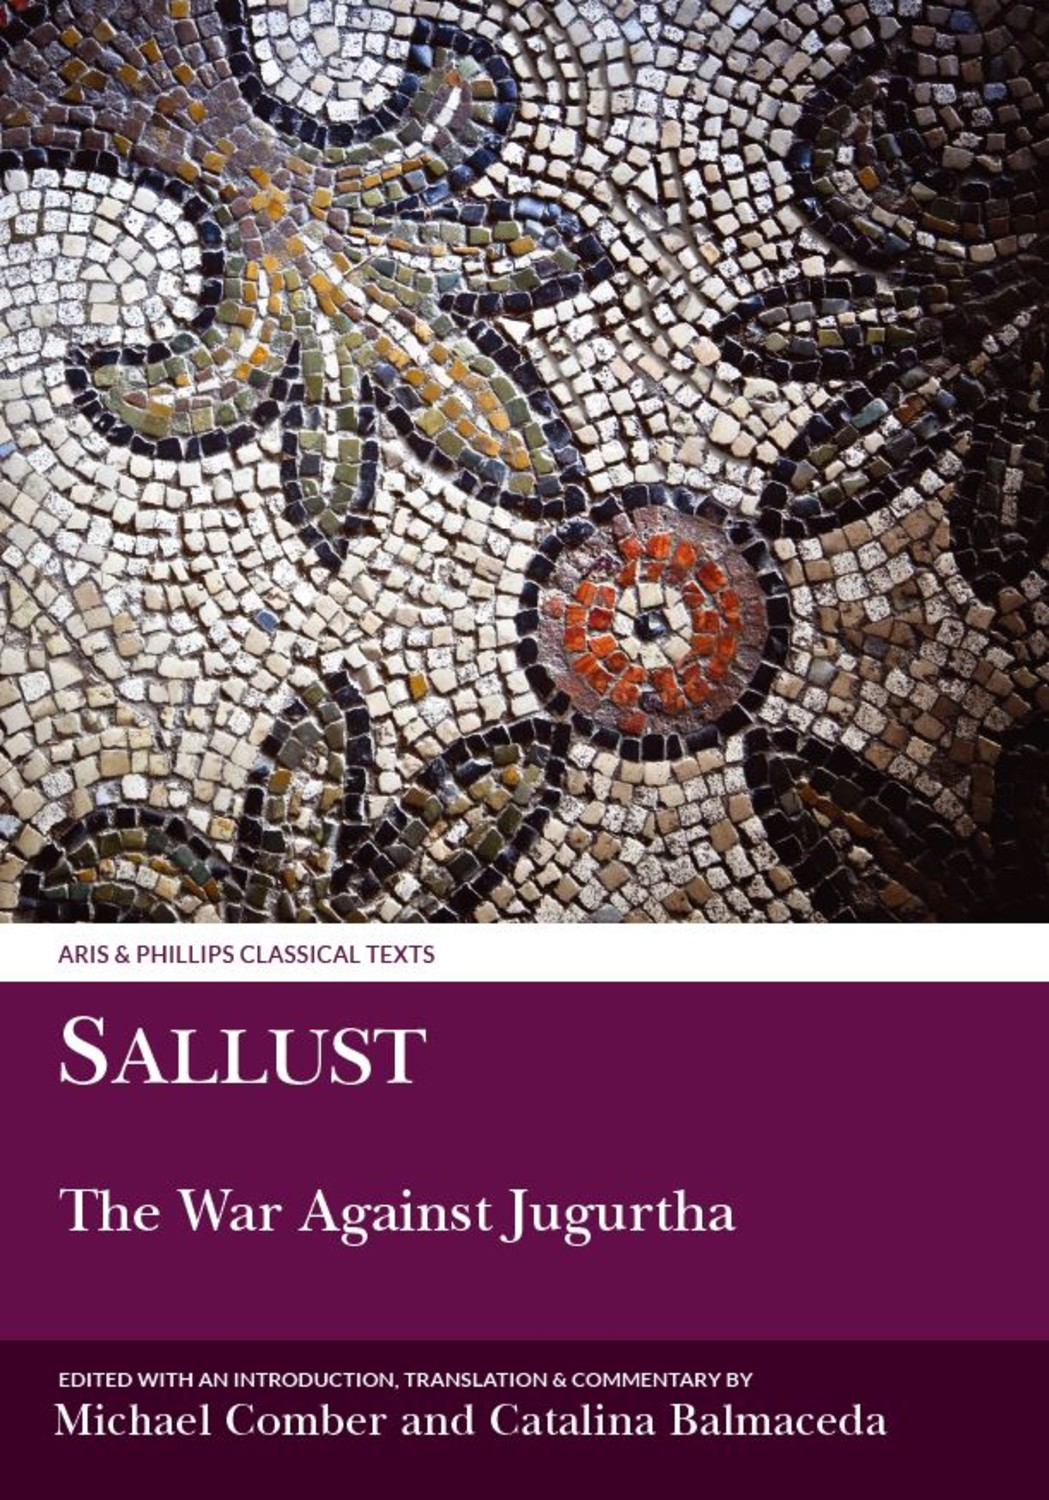 Sallust: The War Against Jugurtha